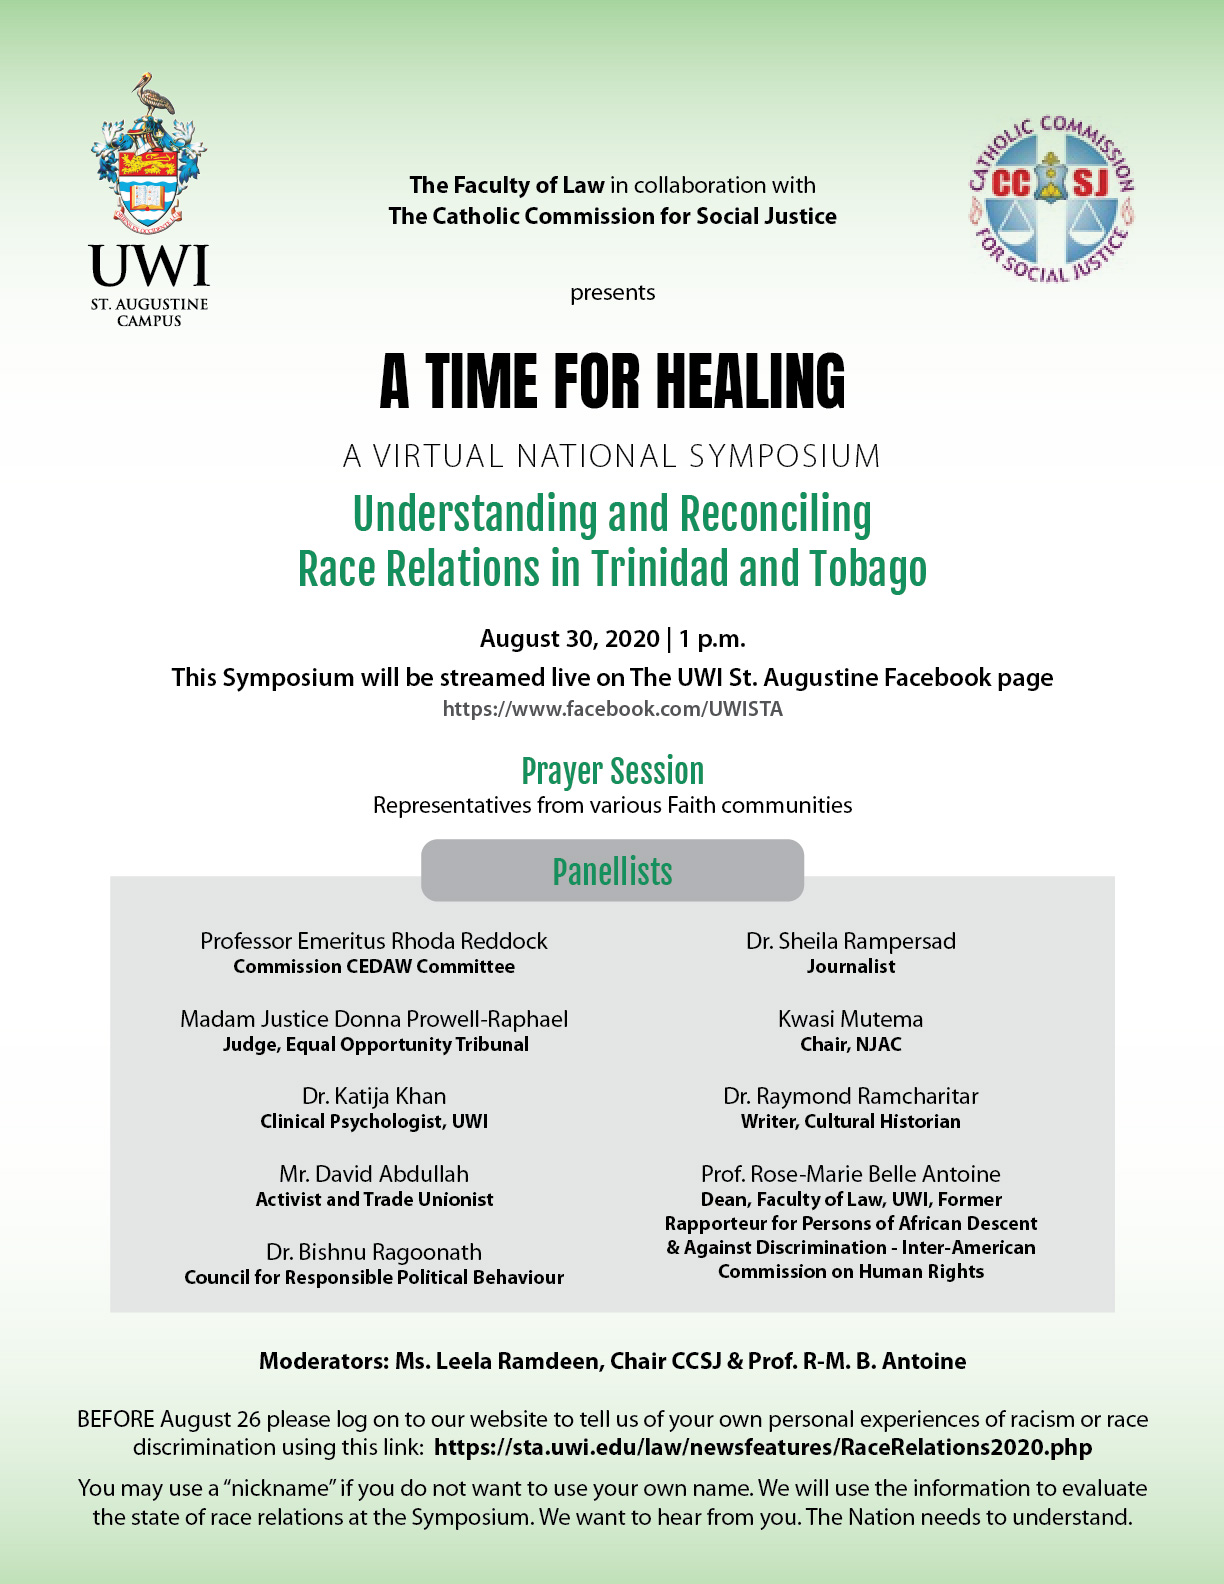 Faculty of Law Symposium on Race 2020